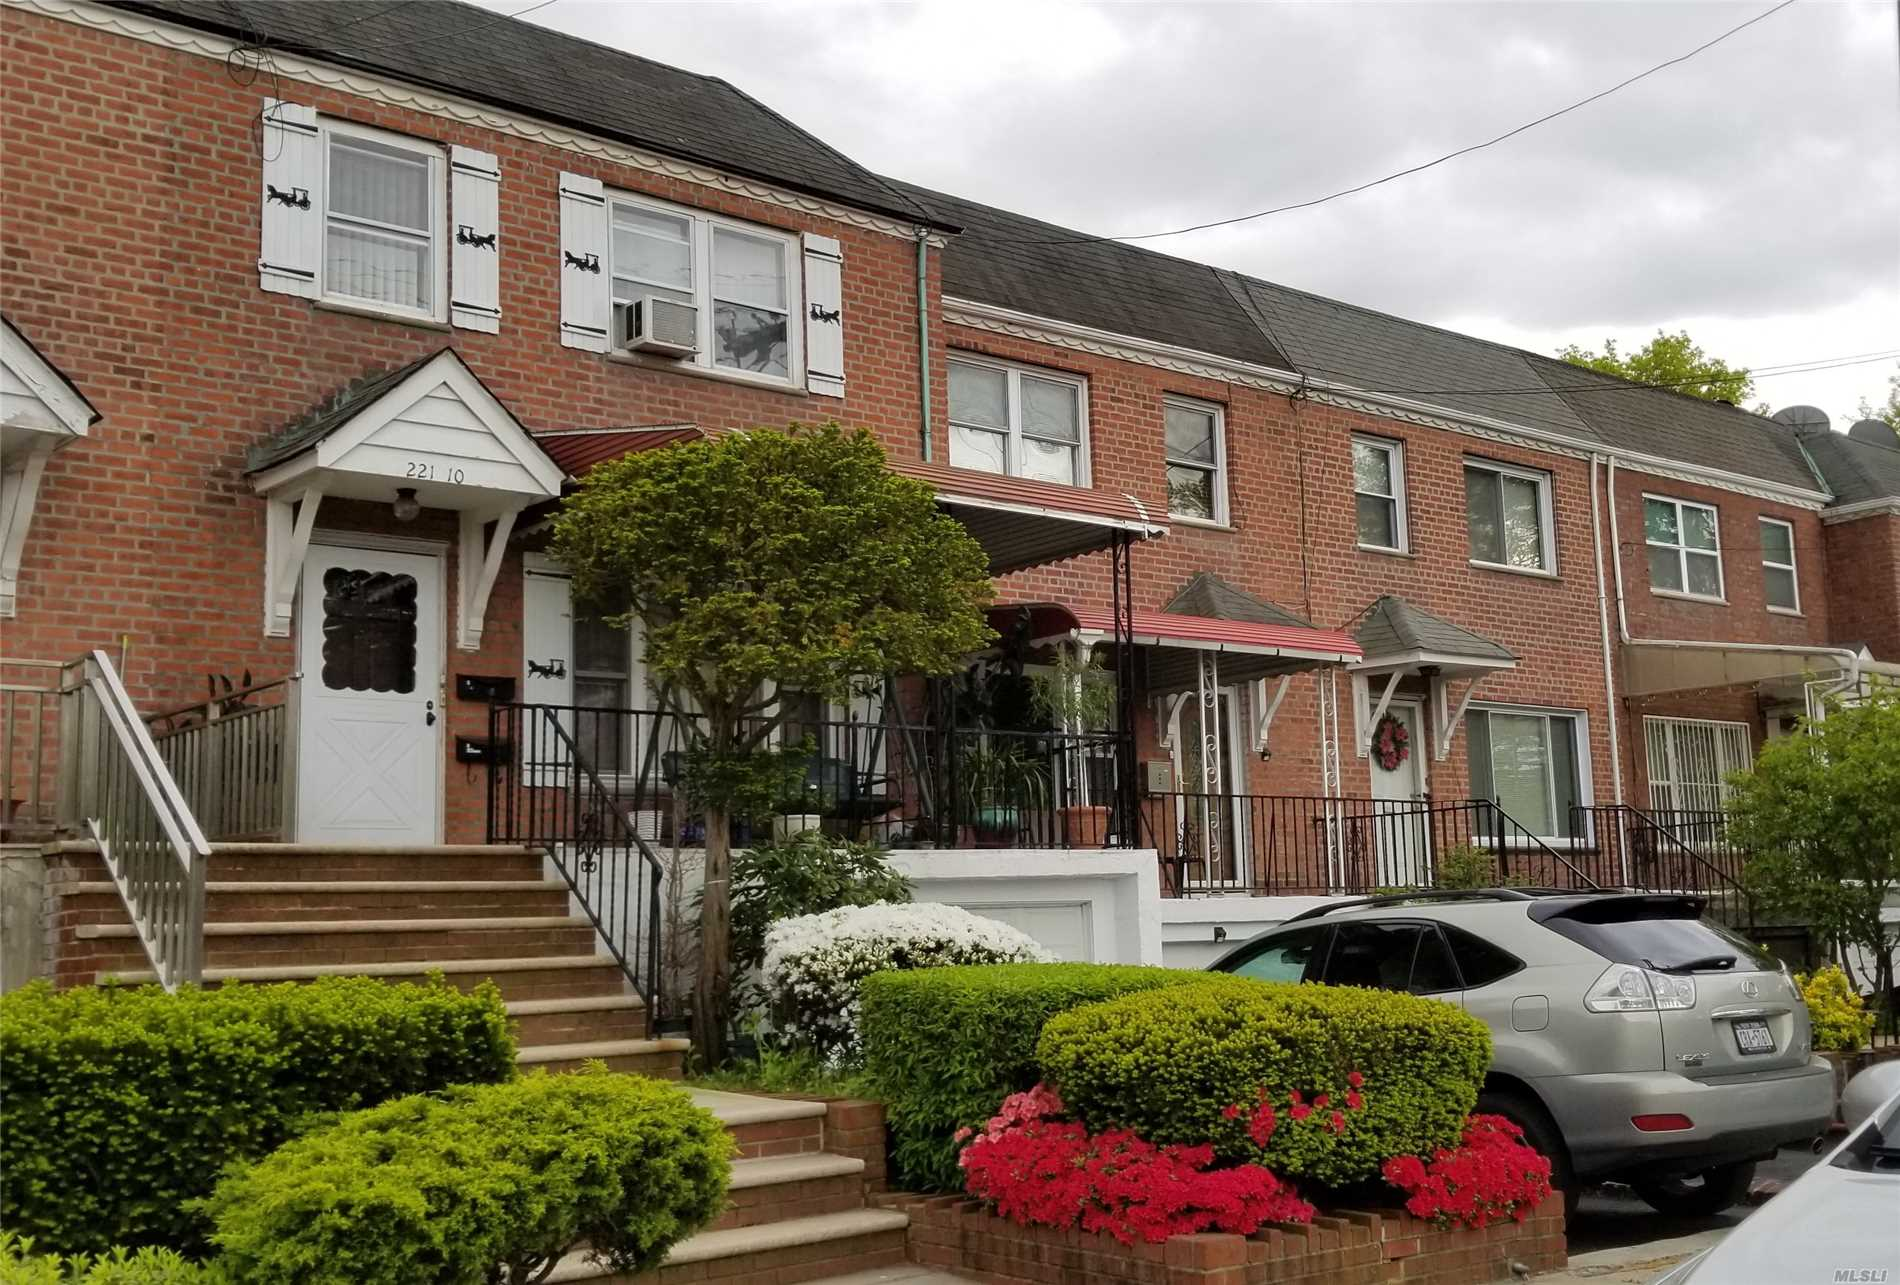 Bright & Updated House W/2 Family CO, Very Convenient Area Close to Schools ( PS 46, JHS 74, HS Cardozo, QCC), Bus Stops(Q27, Q88, Q30, QM5, QM35, QM8), Shopping Center,  Alley Pond Park, Easy to Access Major Highways